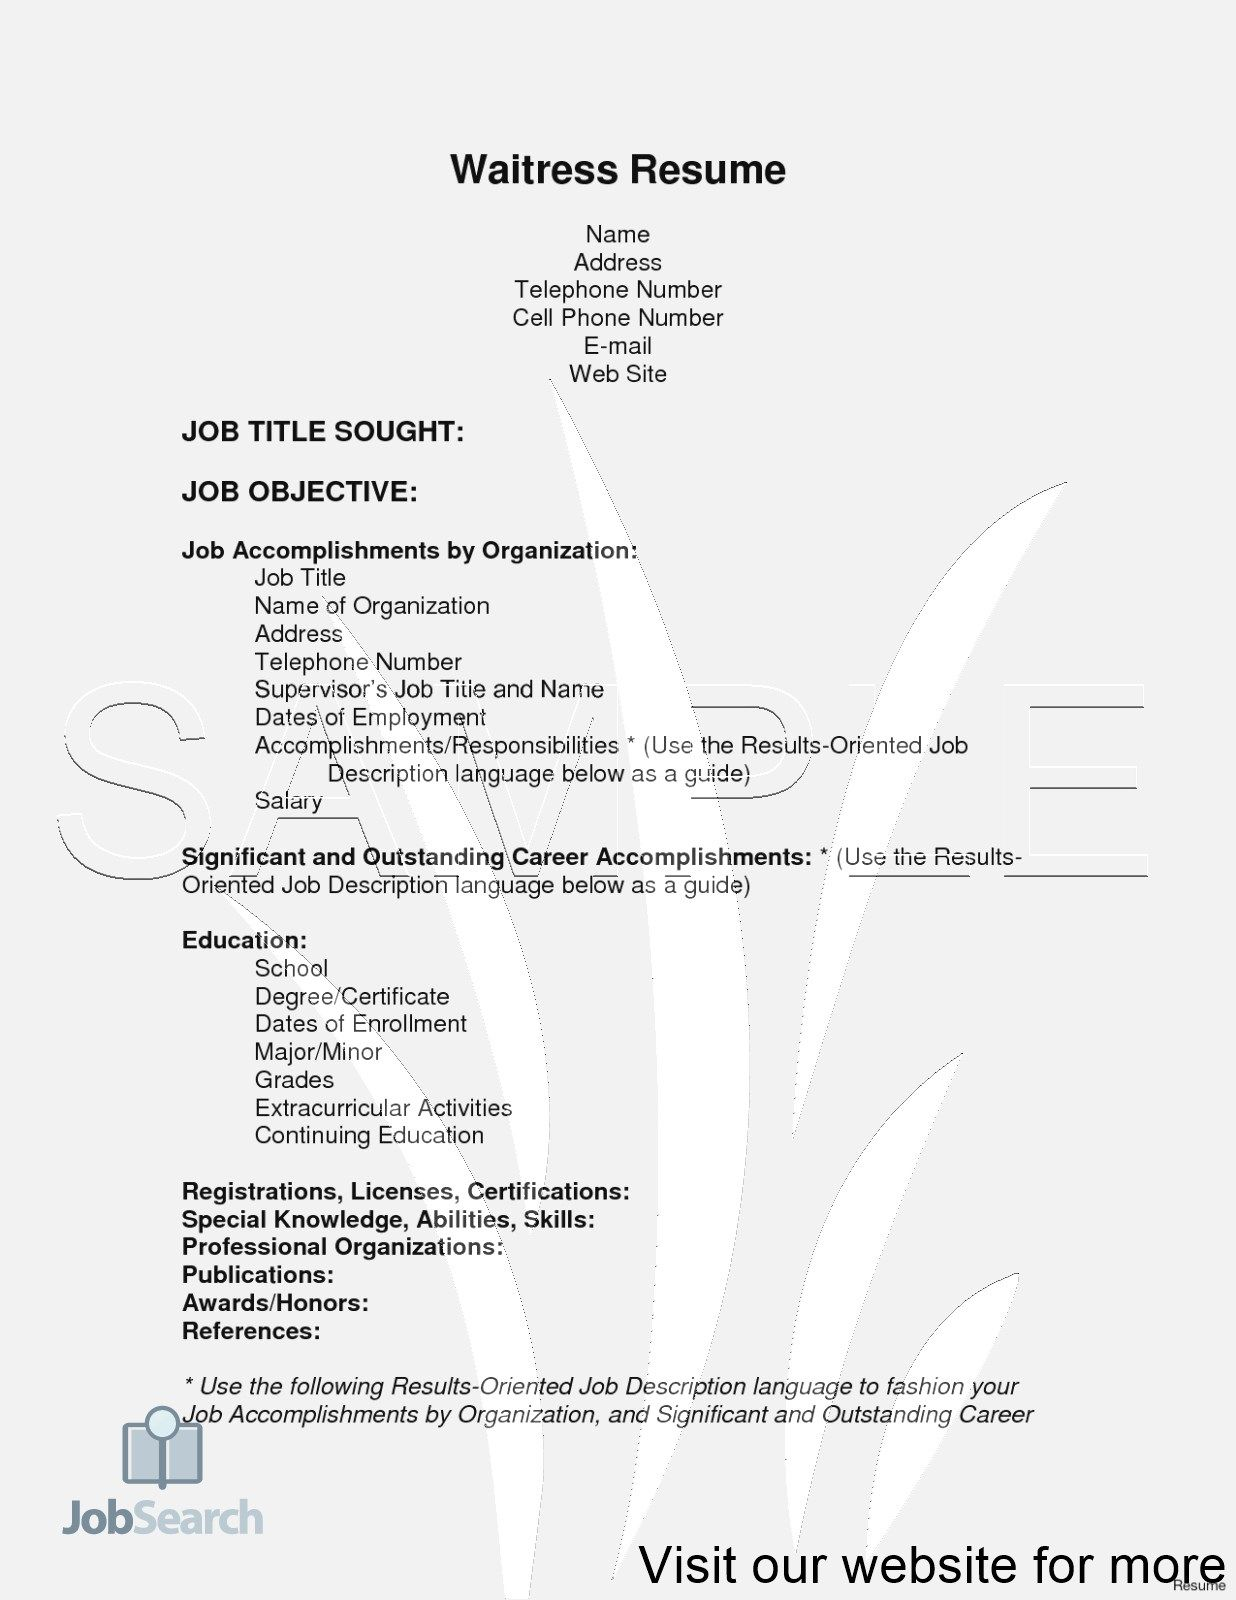 creative resume examples Professional in 2020 Resume